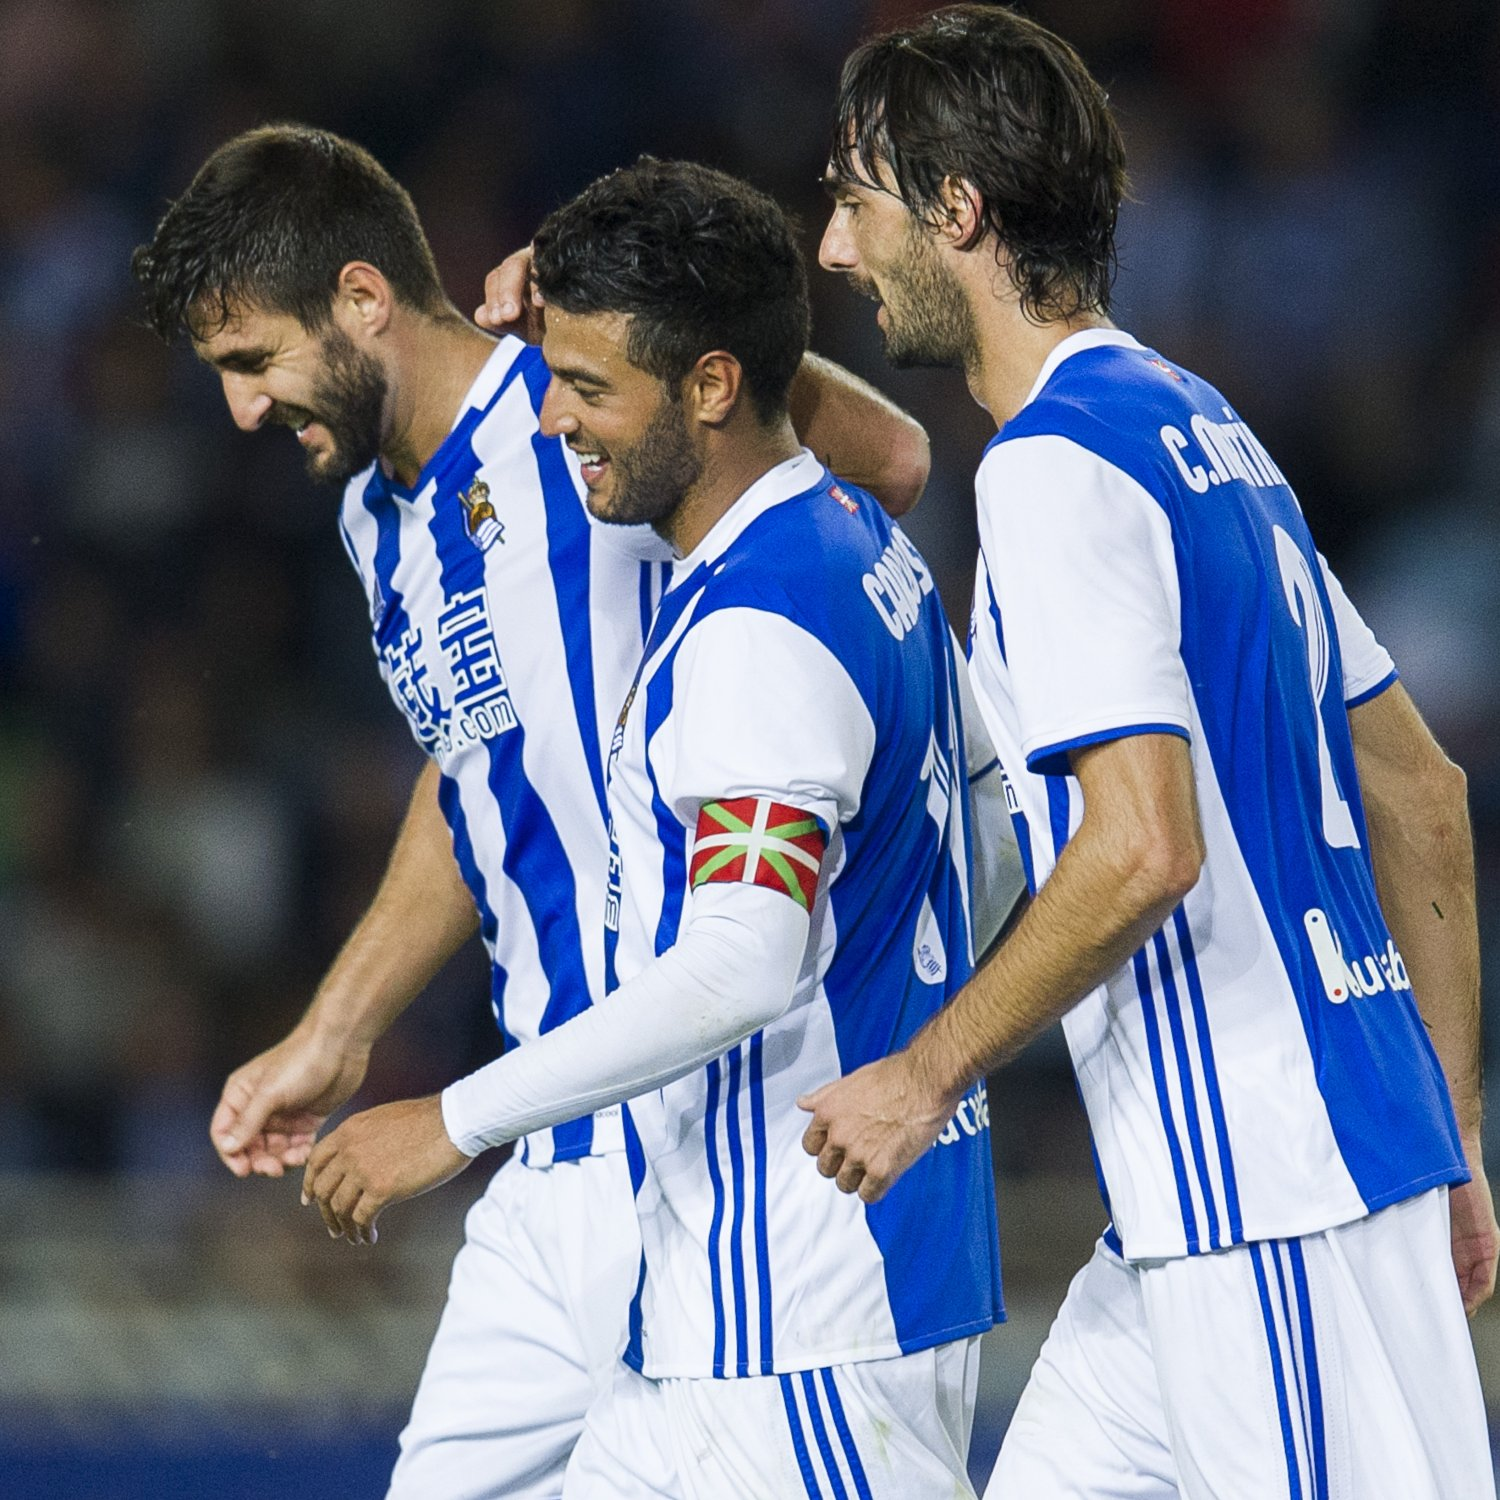 La liga table 2016 latest standings following friday 39 s week 10 results bleacher report - La liga latest results and table ...